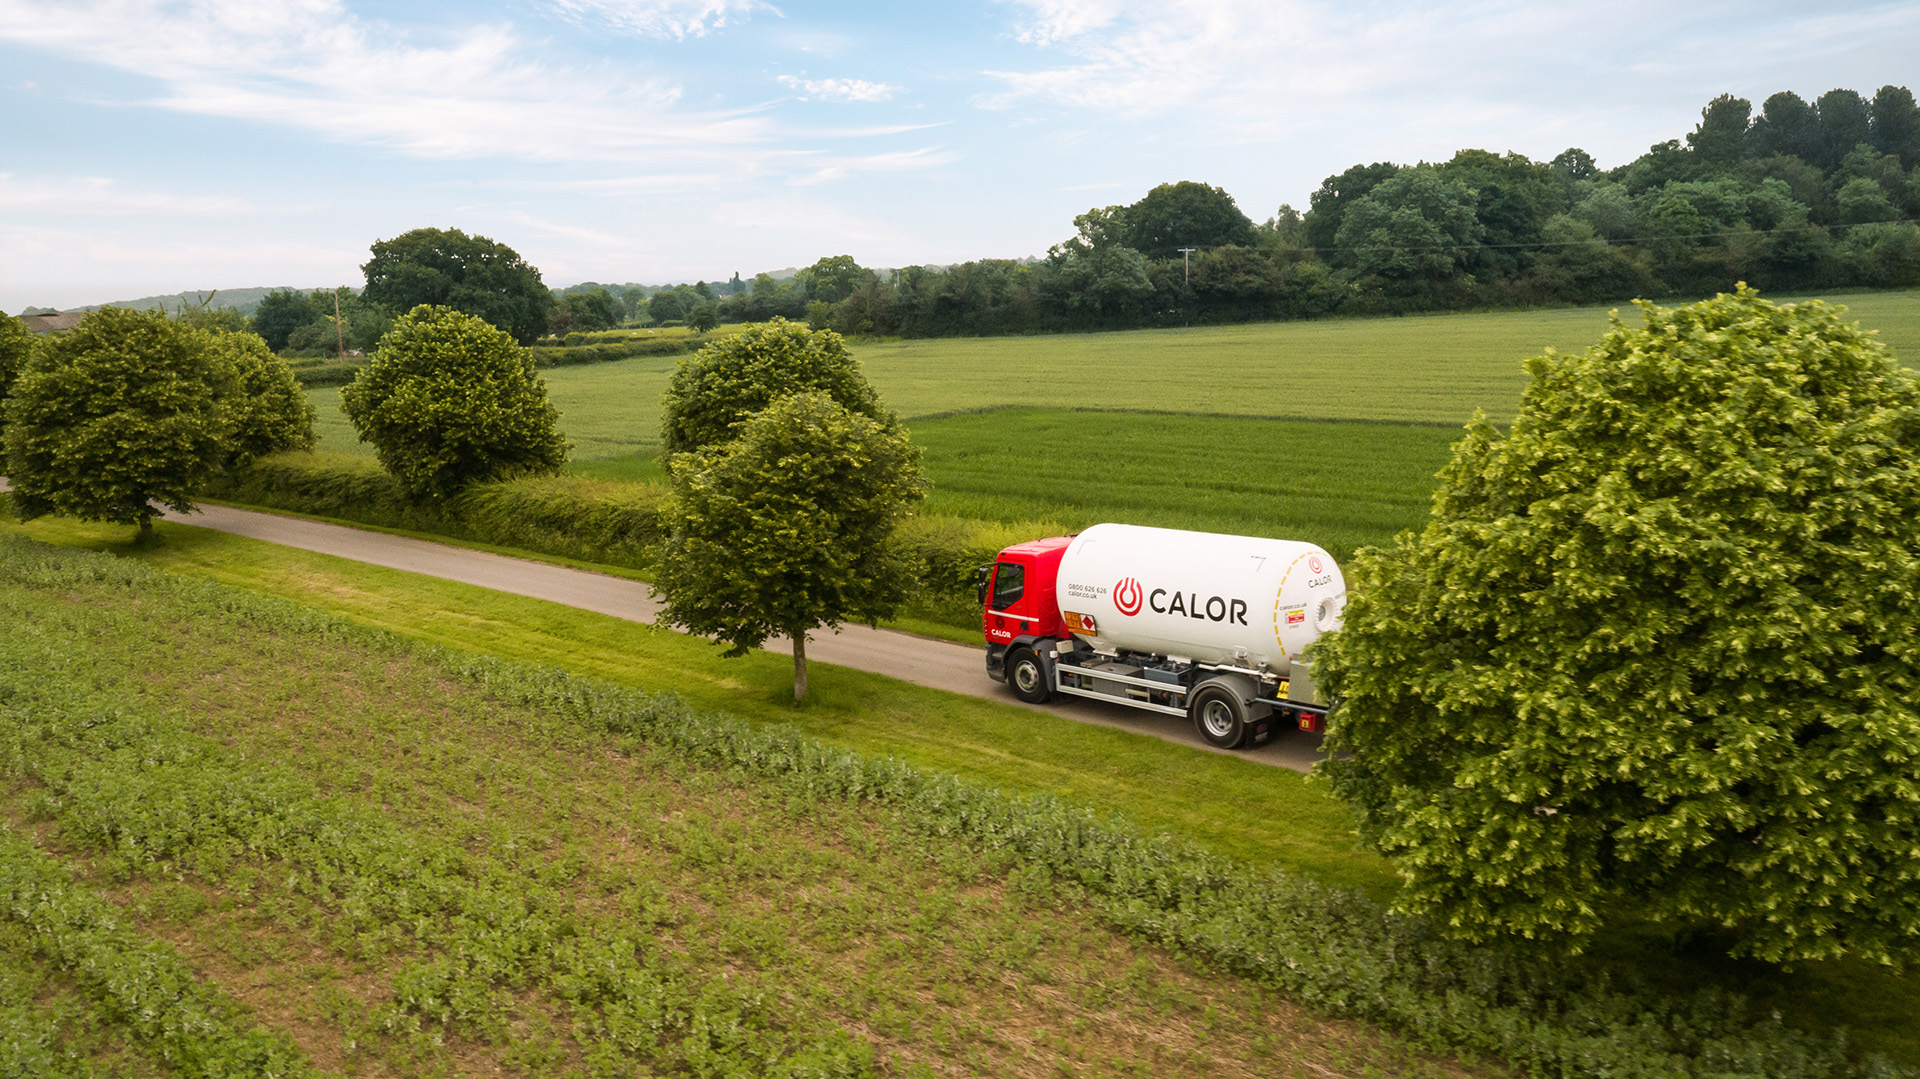 A Calor lorry driving in between green meadows in the countryside